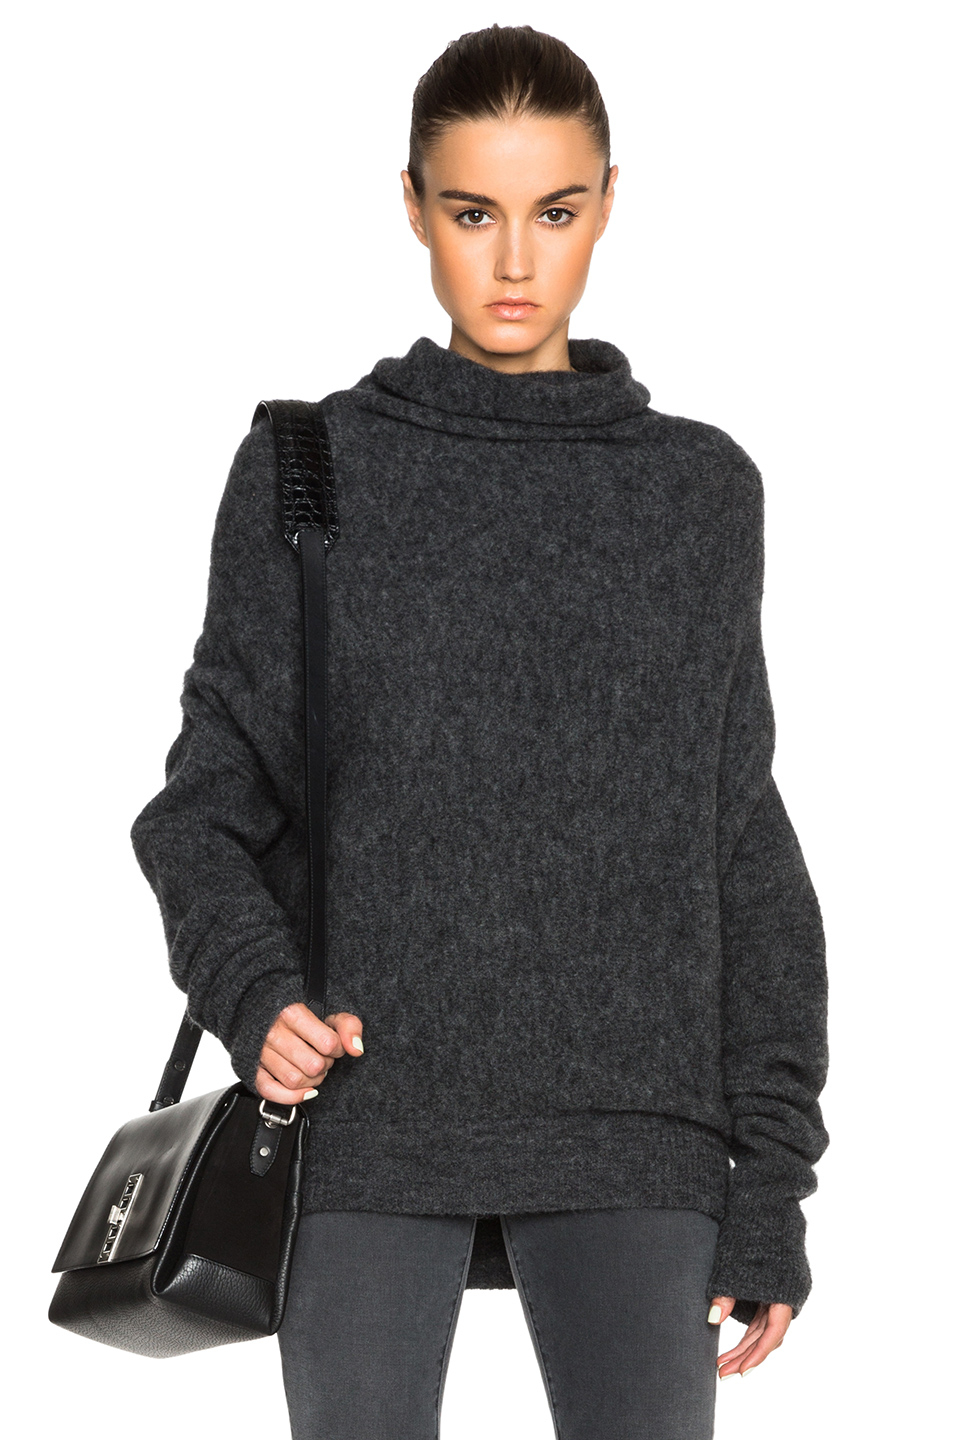 acne studios vendome drape mohair sweater in gray lyst. Black Bedroom Furniture Sets. Home Design Ideas